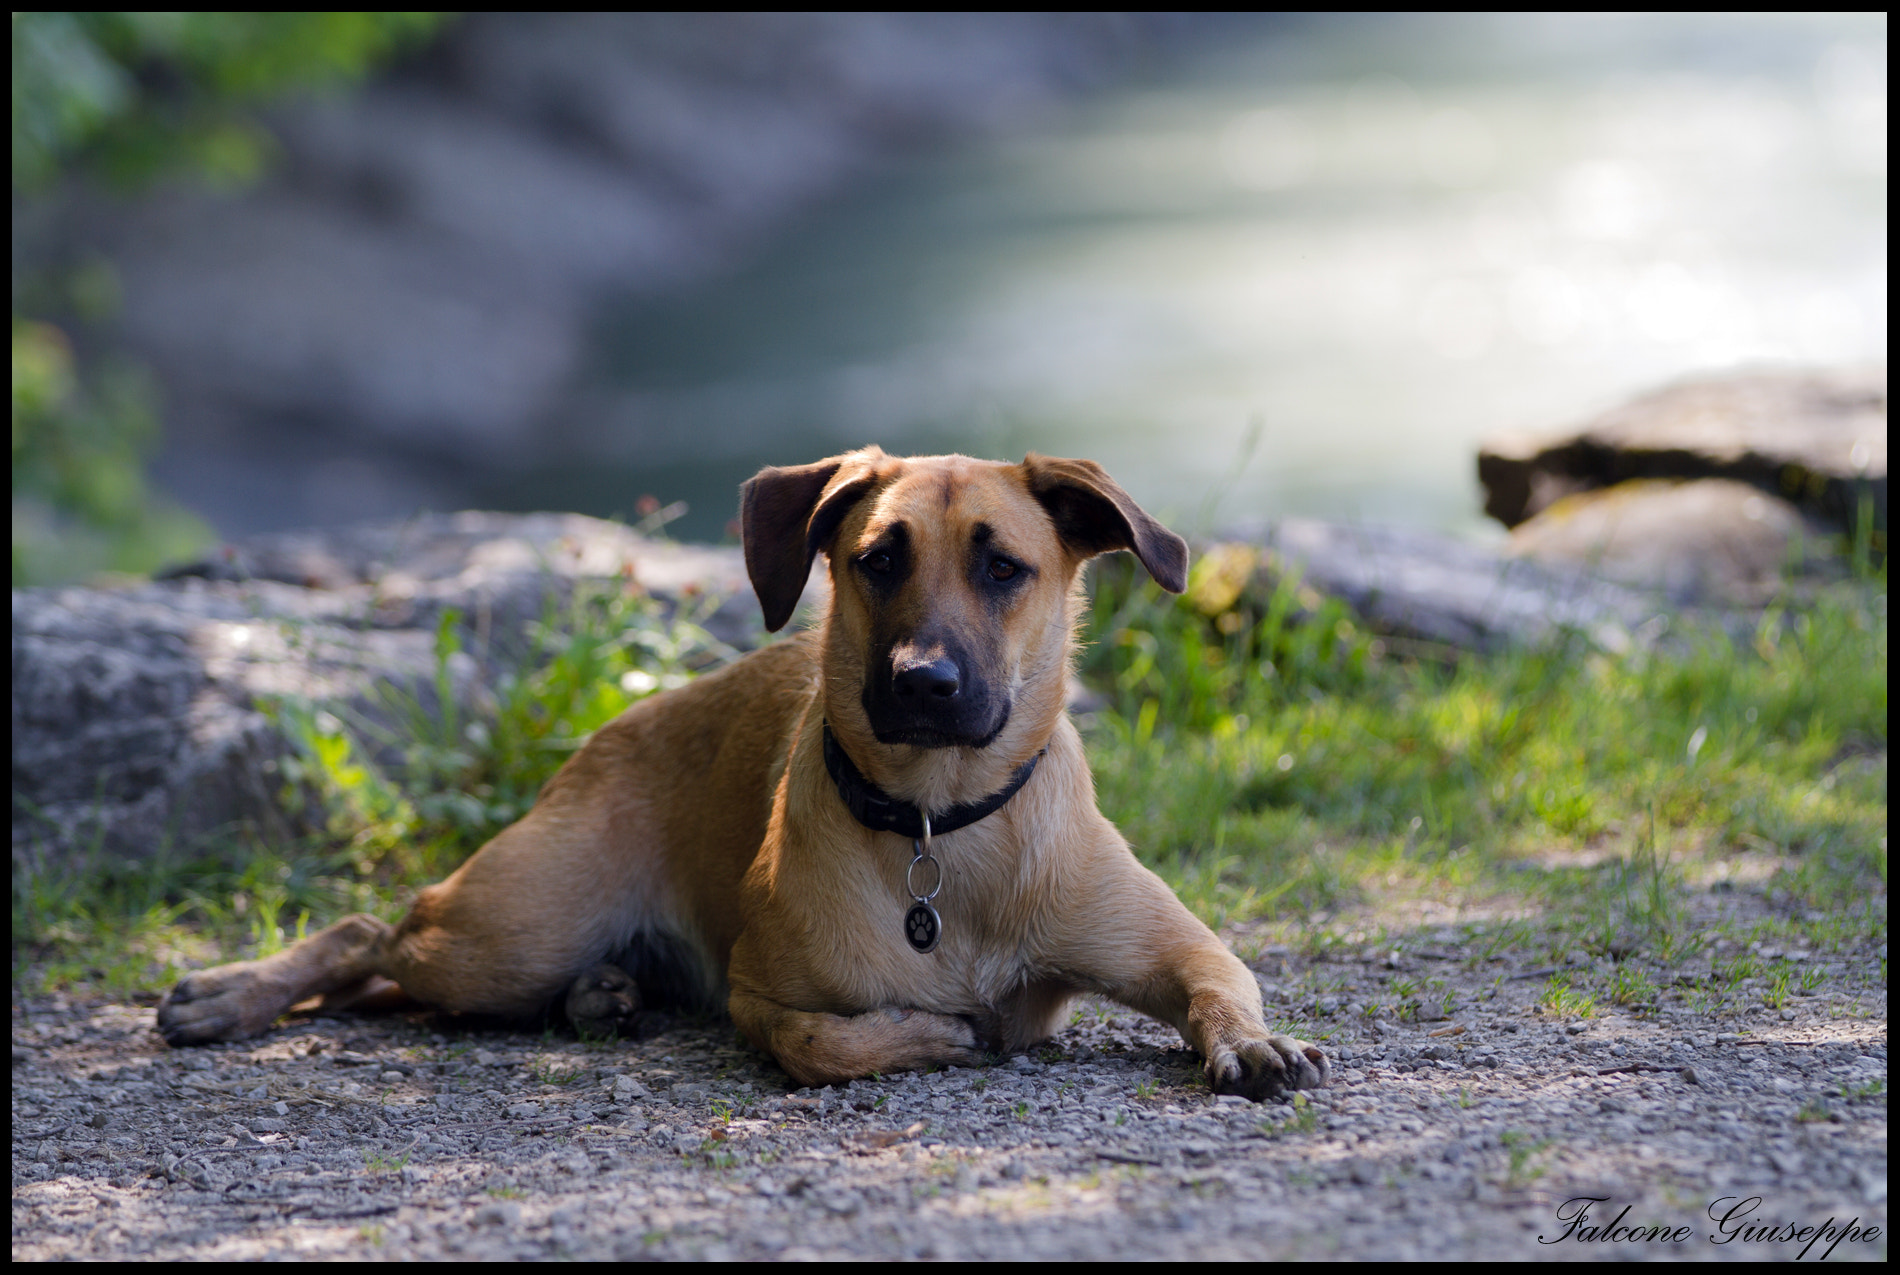 Photograph Dog by Falcone Giuseppe on 500px